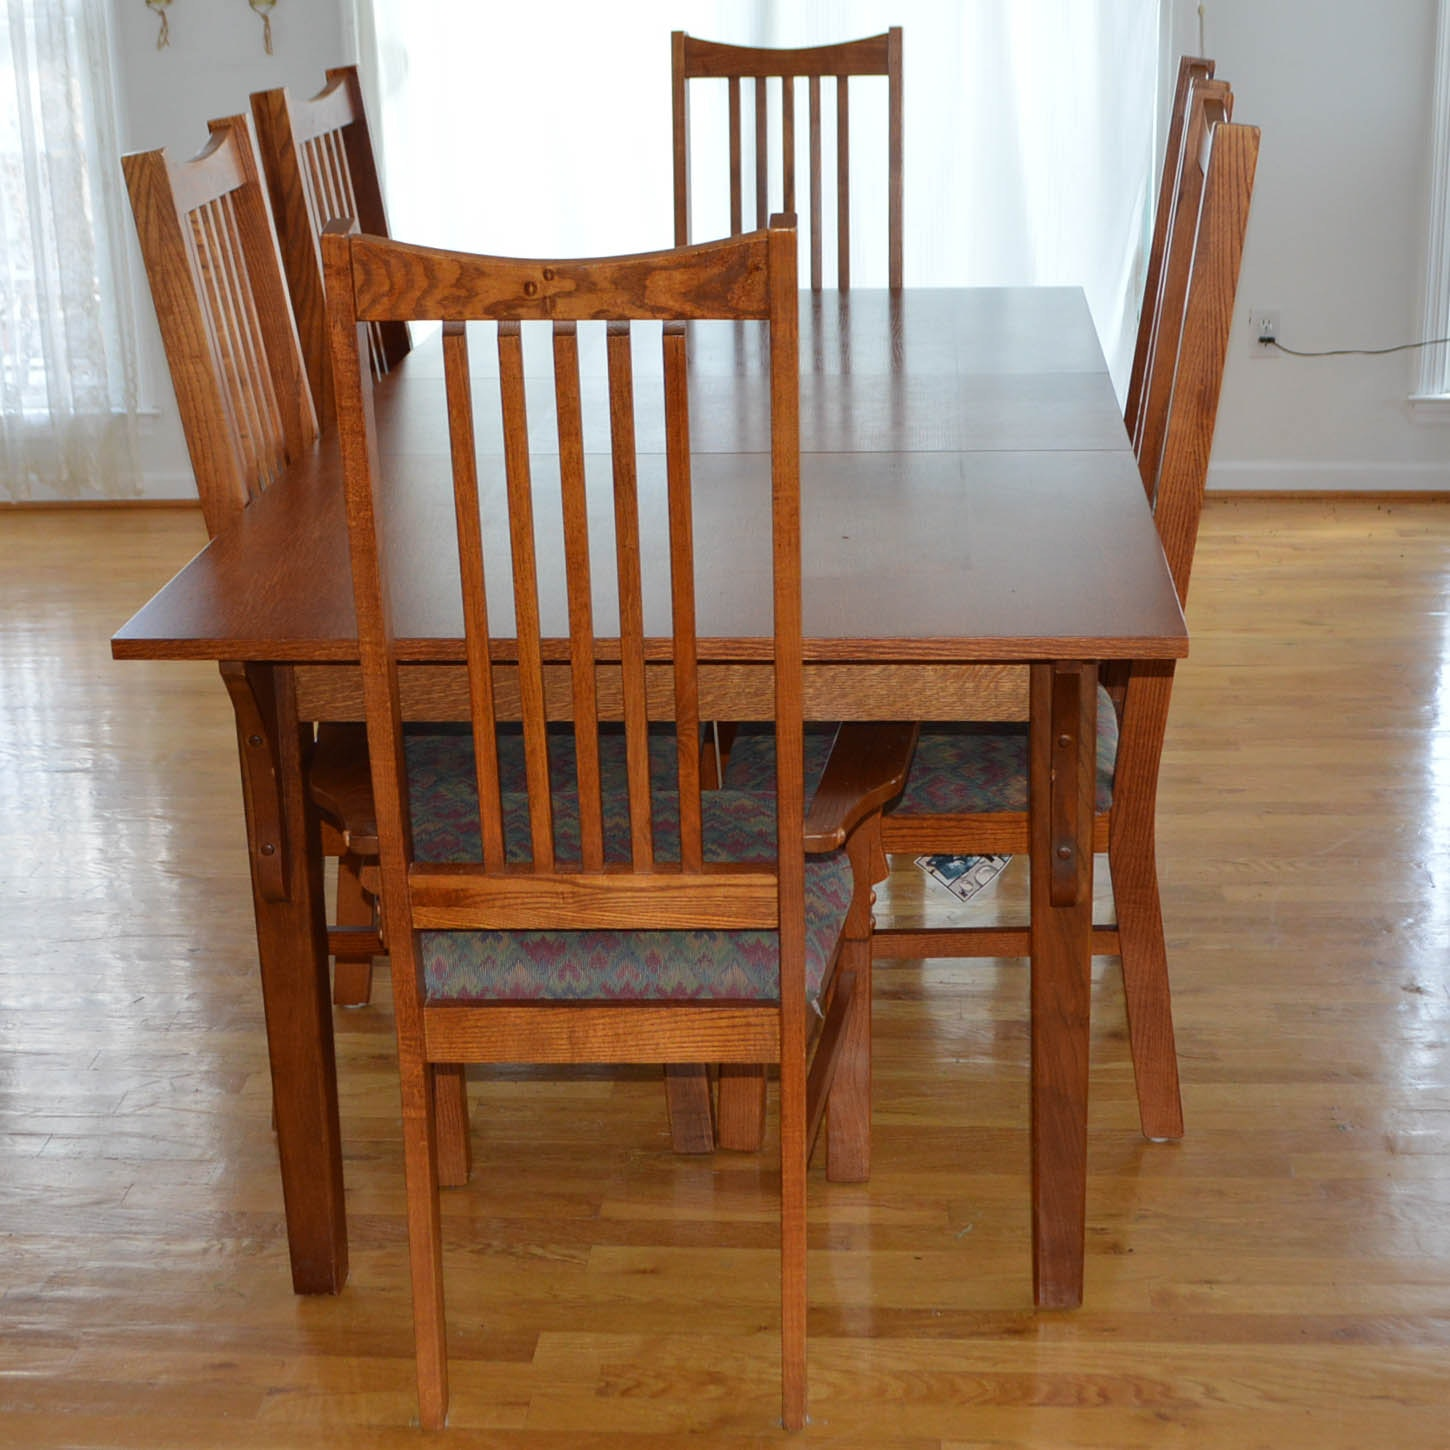 Red Oak Mission Style Dining Table and Chairs EBTH : DSC0246jpgixlibrb 11 from www.ebth.com size 880 x 880 jpeg 147kB